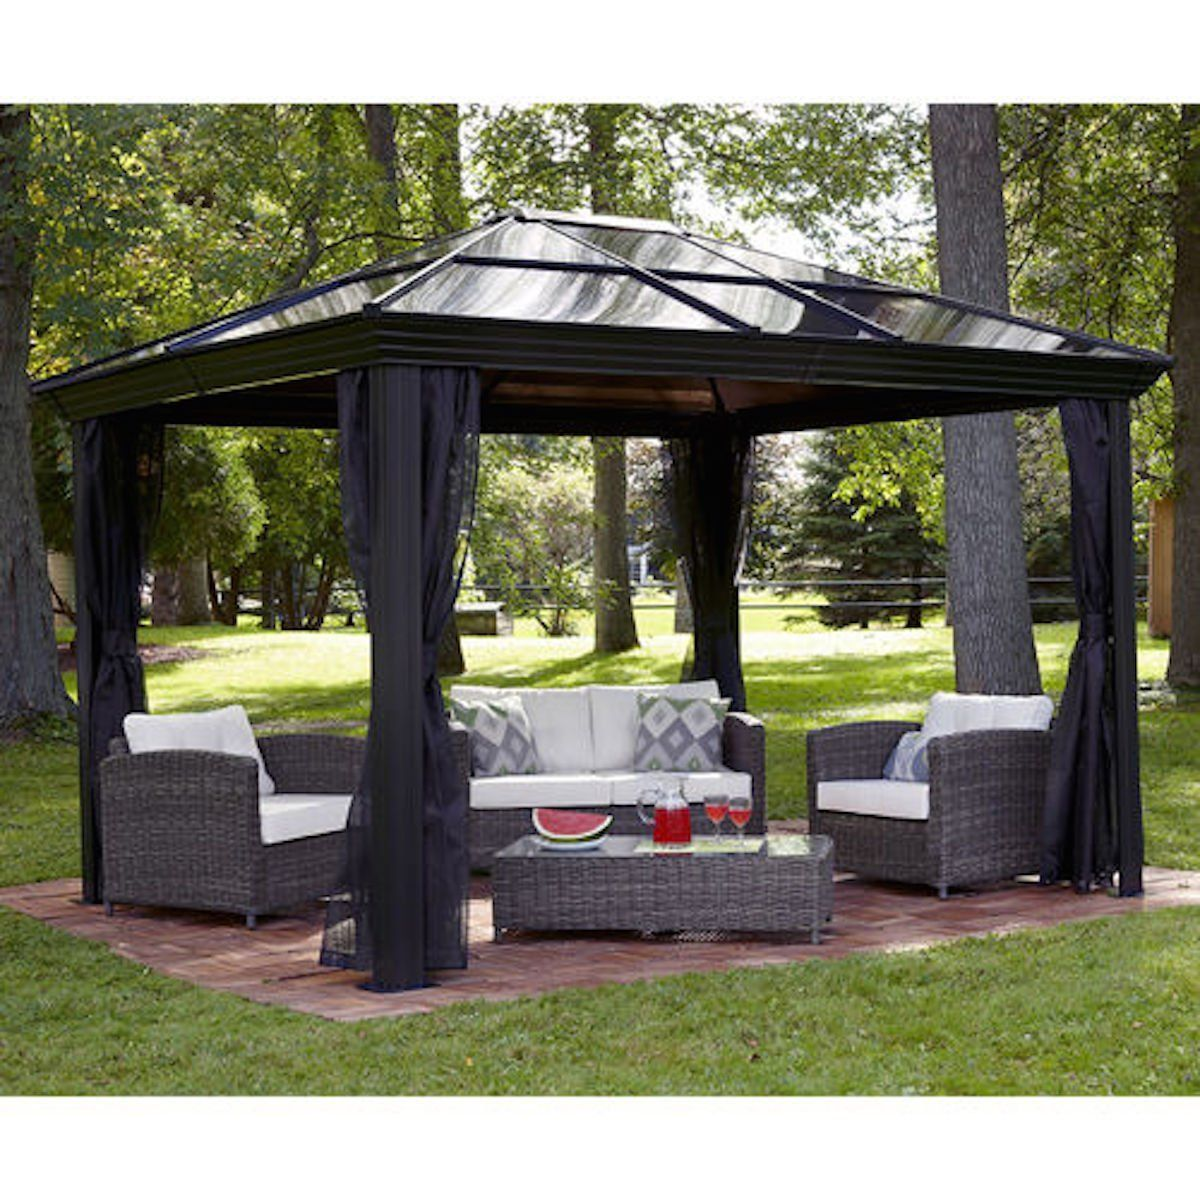 Gazebo Canopy Pergola This 10 X 12 Hardtop Gazebo Tent Has A Metal Gazebo Frame And Durable Polycarbonate Roof T Backyard Gazebo Gazebo Tent Backyard Canopy